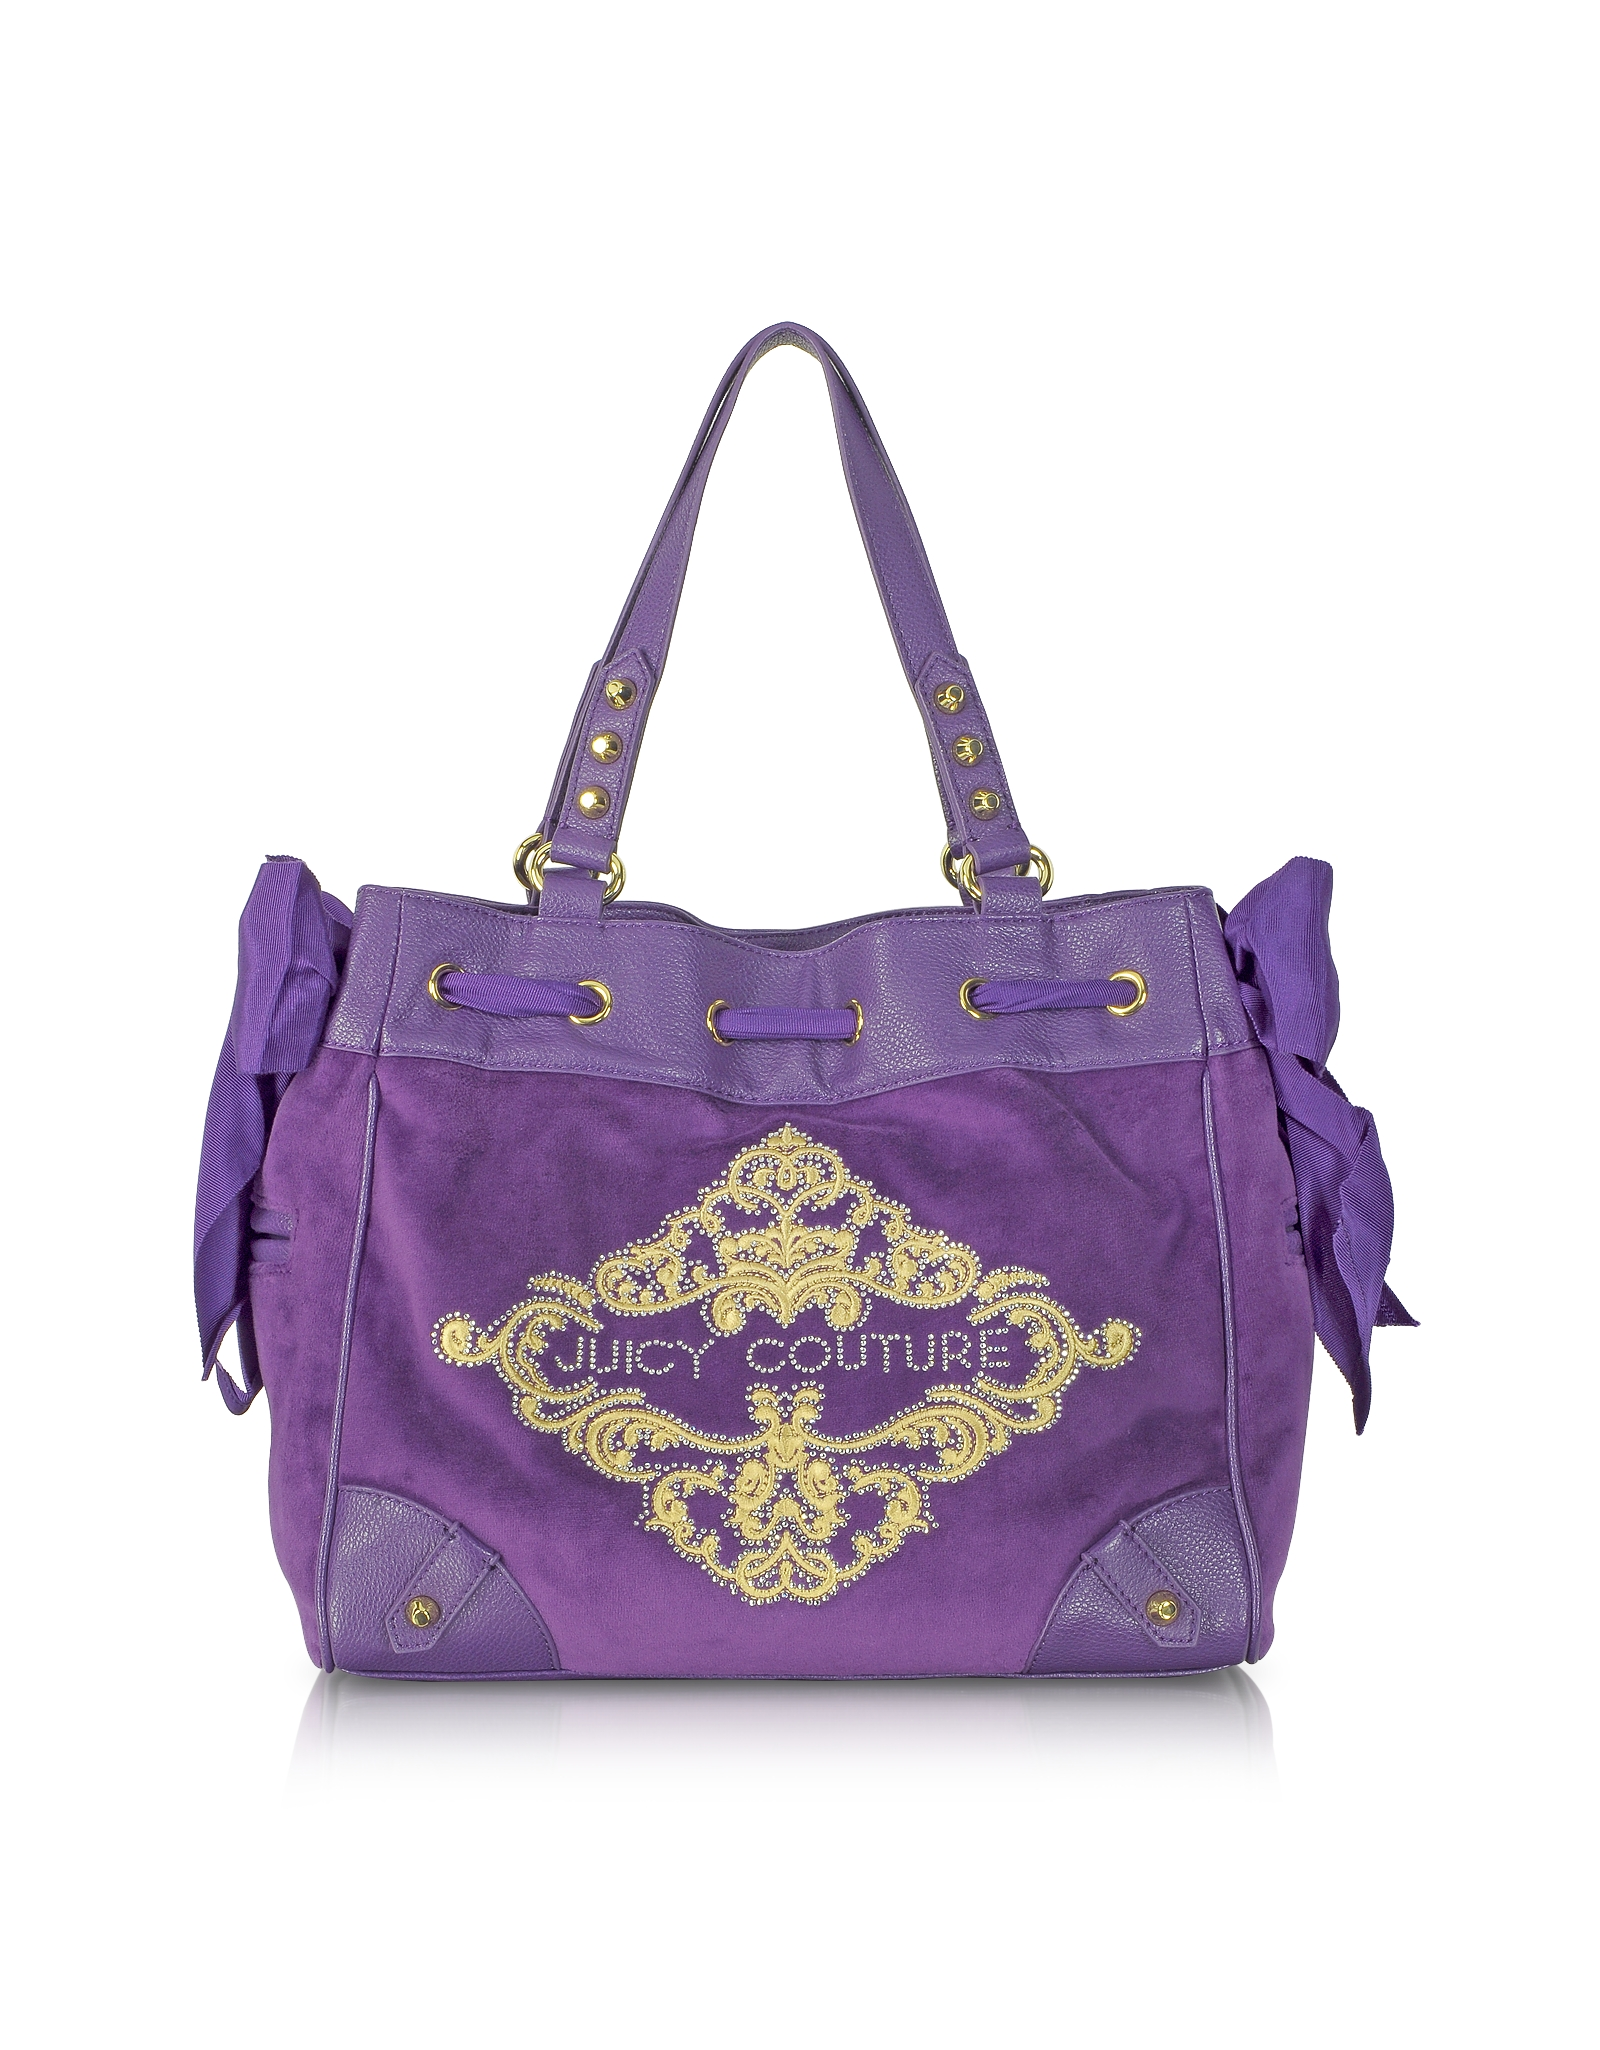 Juicy couture fashion velour daydreamer tote